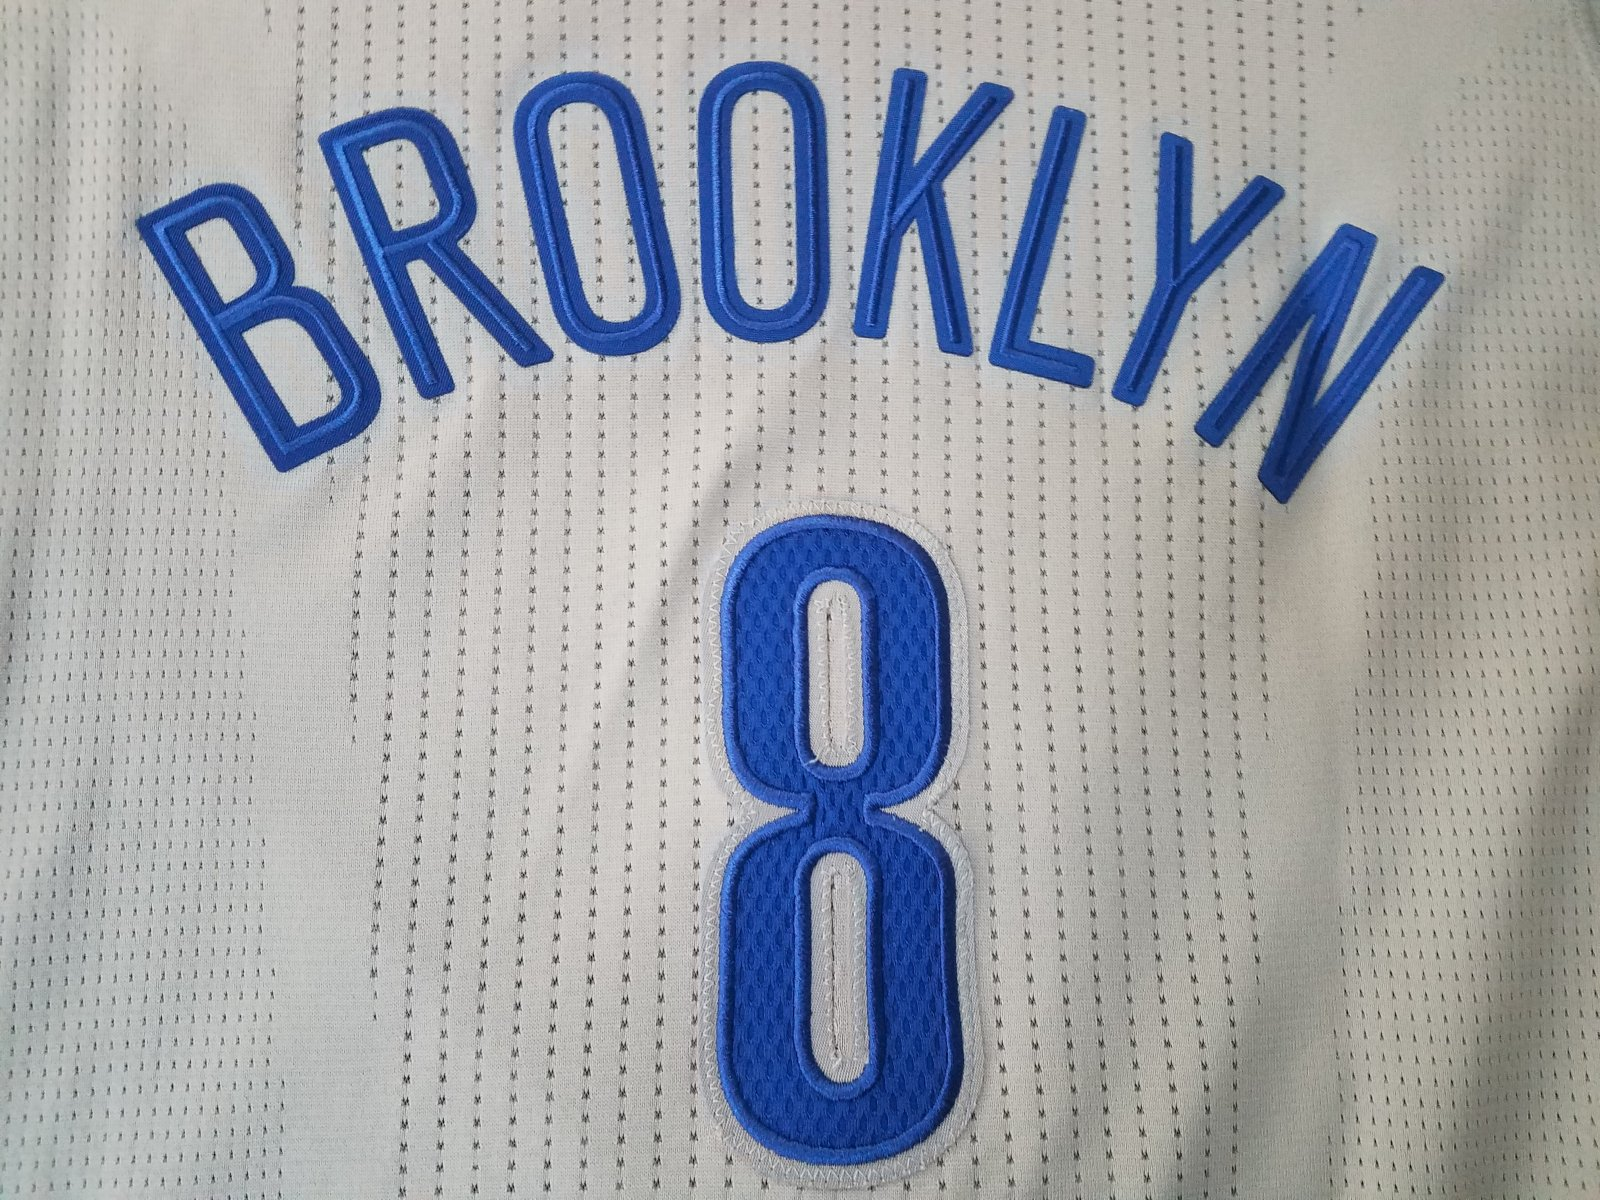 nets spencer dinwiddie jersey and shorts (6).jpg